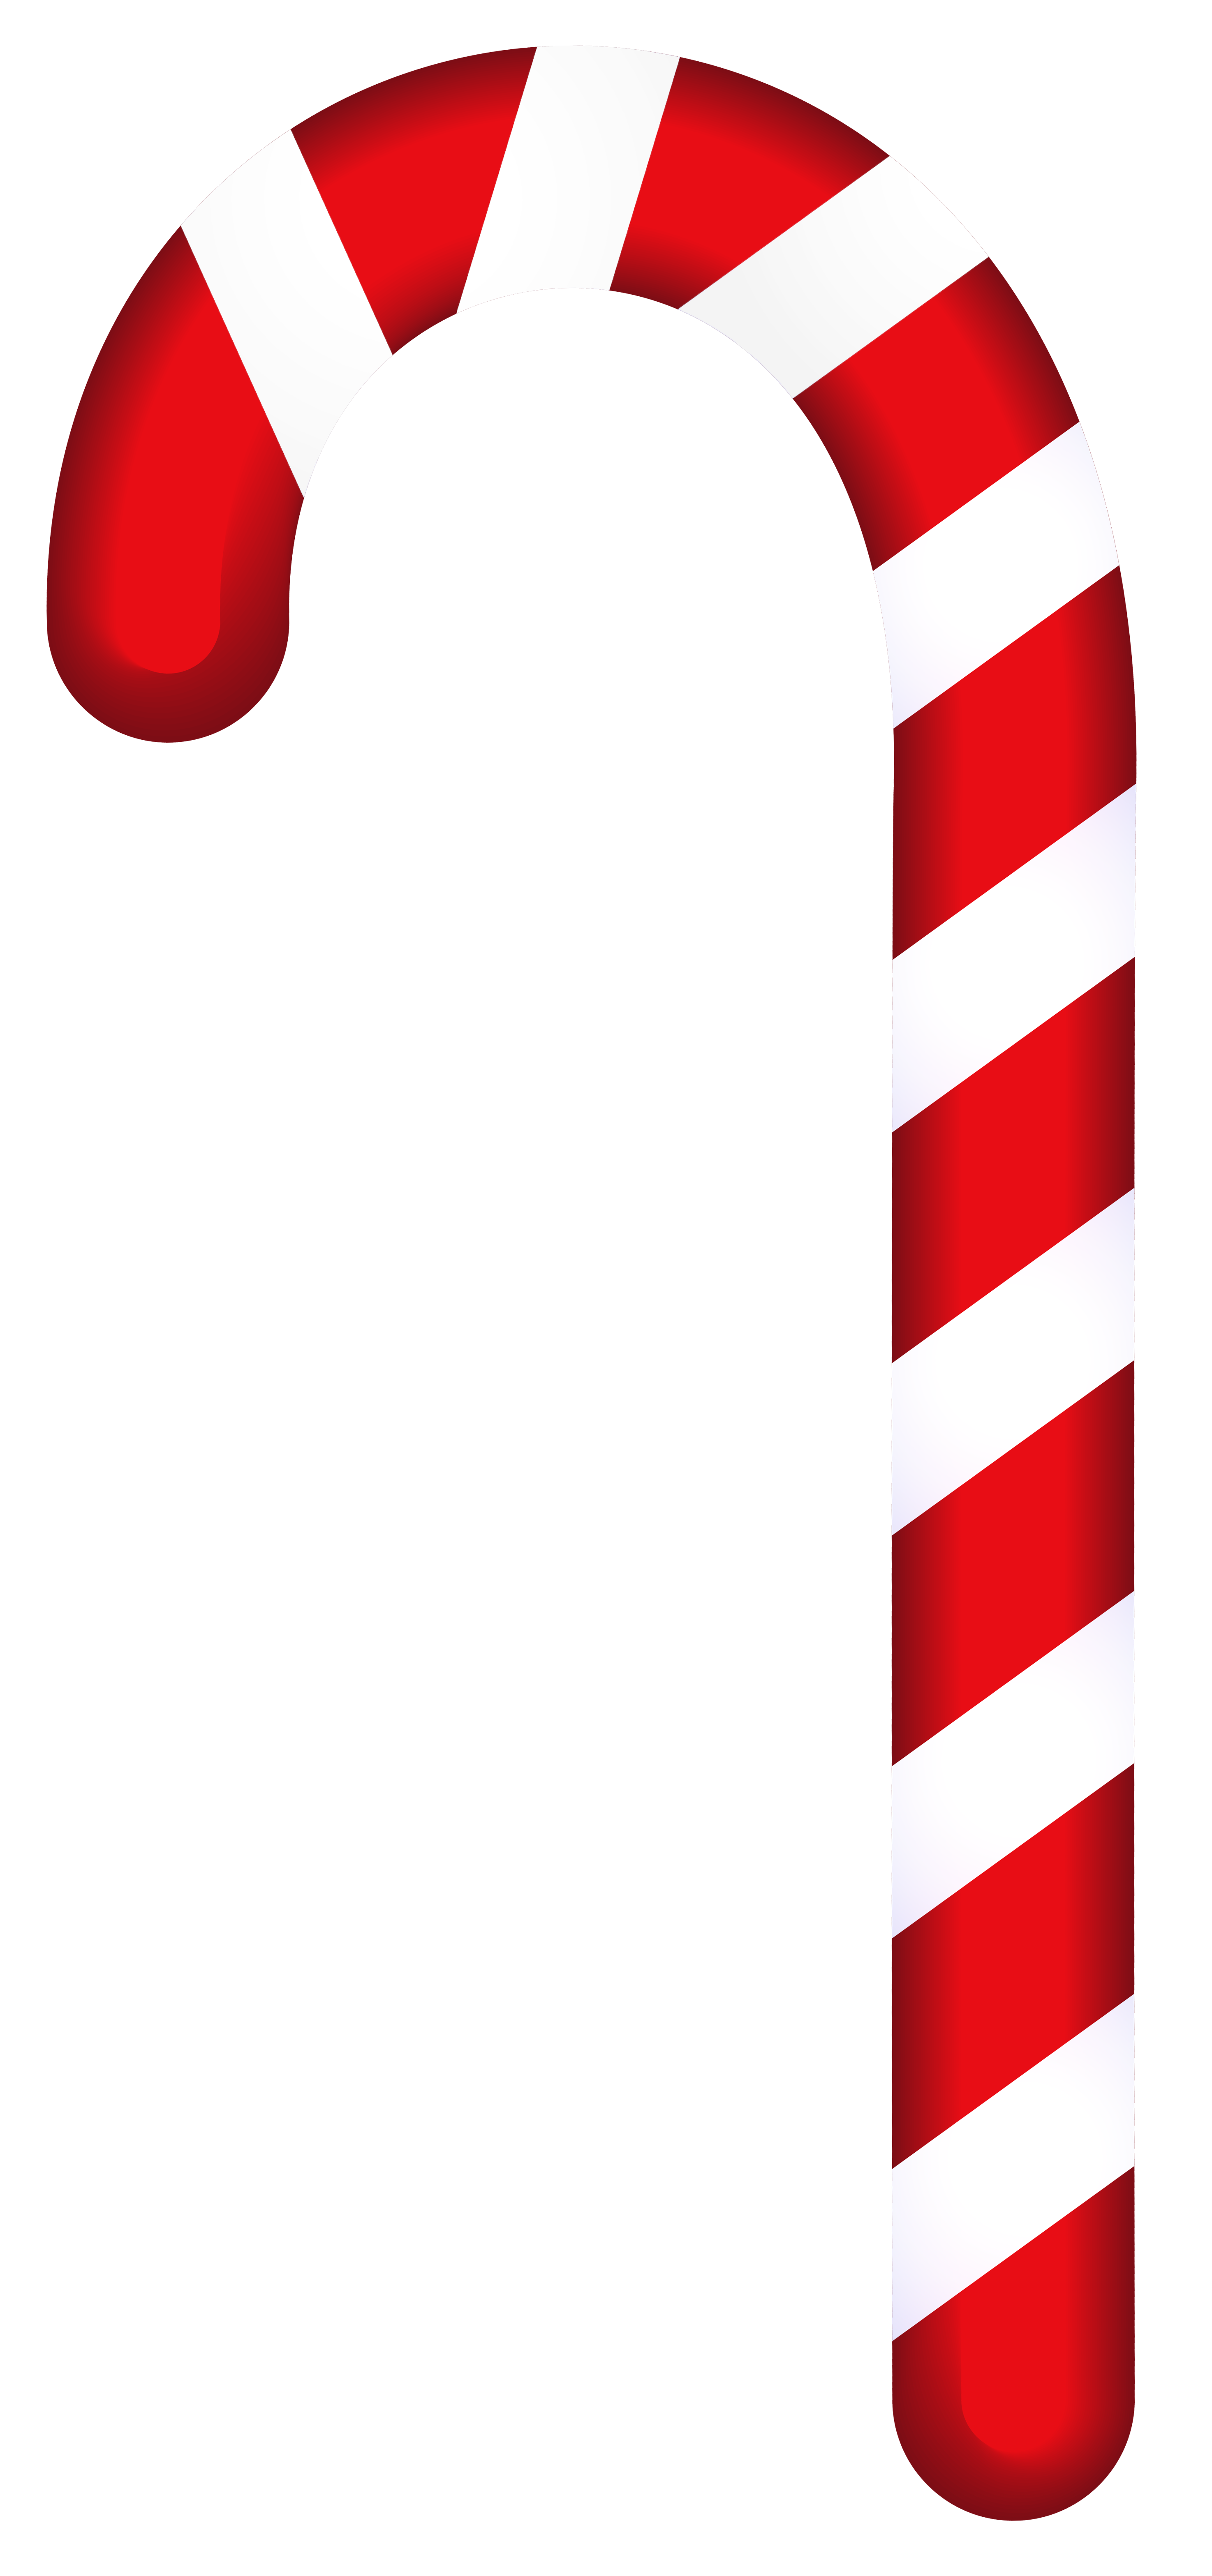 Movies clipart candy. Cane png clip art